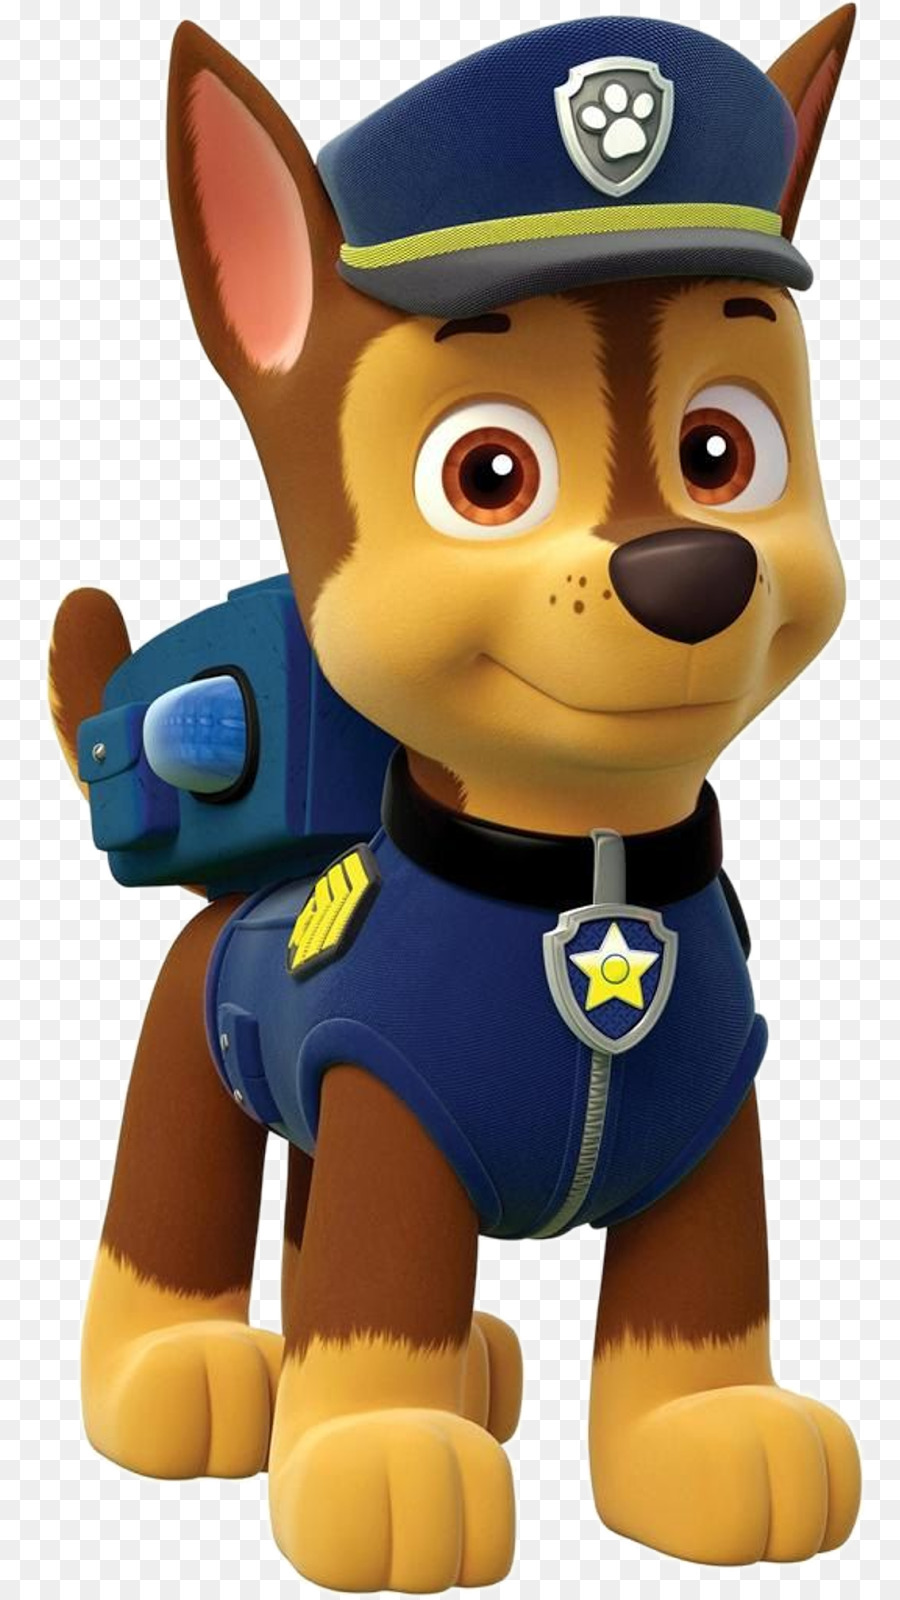 Chase Paw Patrol clipart.